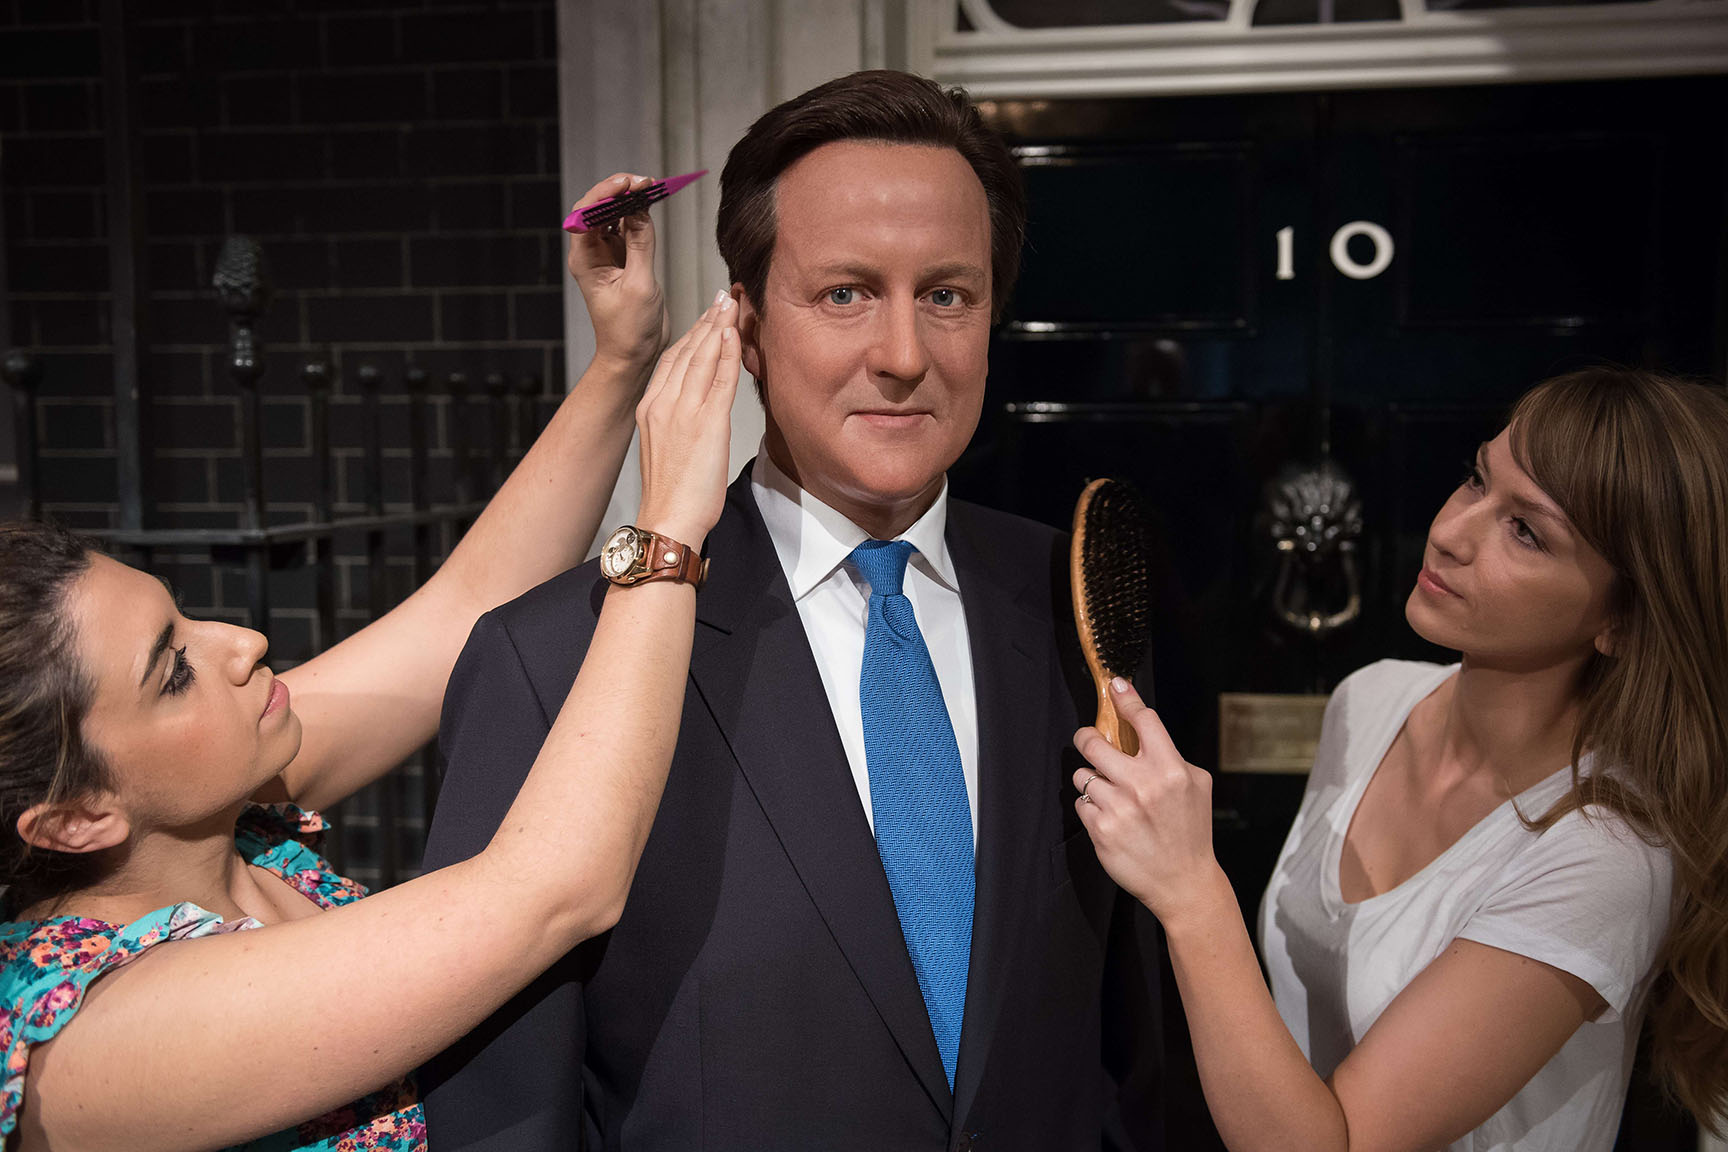 wax figure of British Prime Minister David Cameron